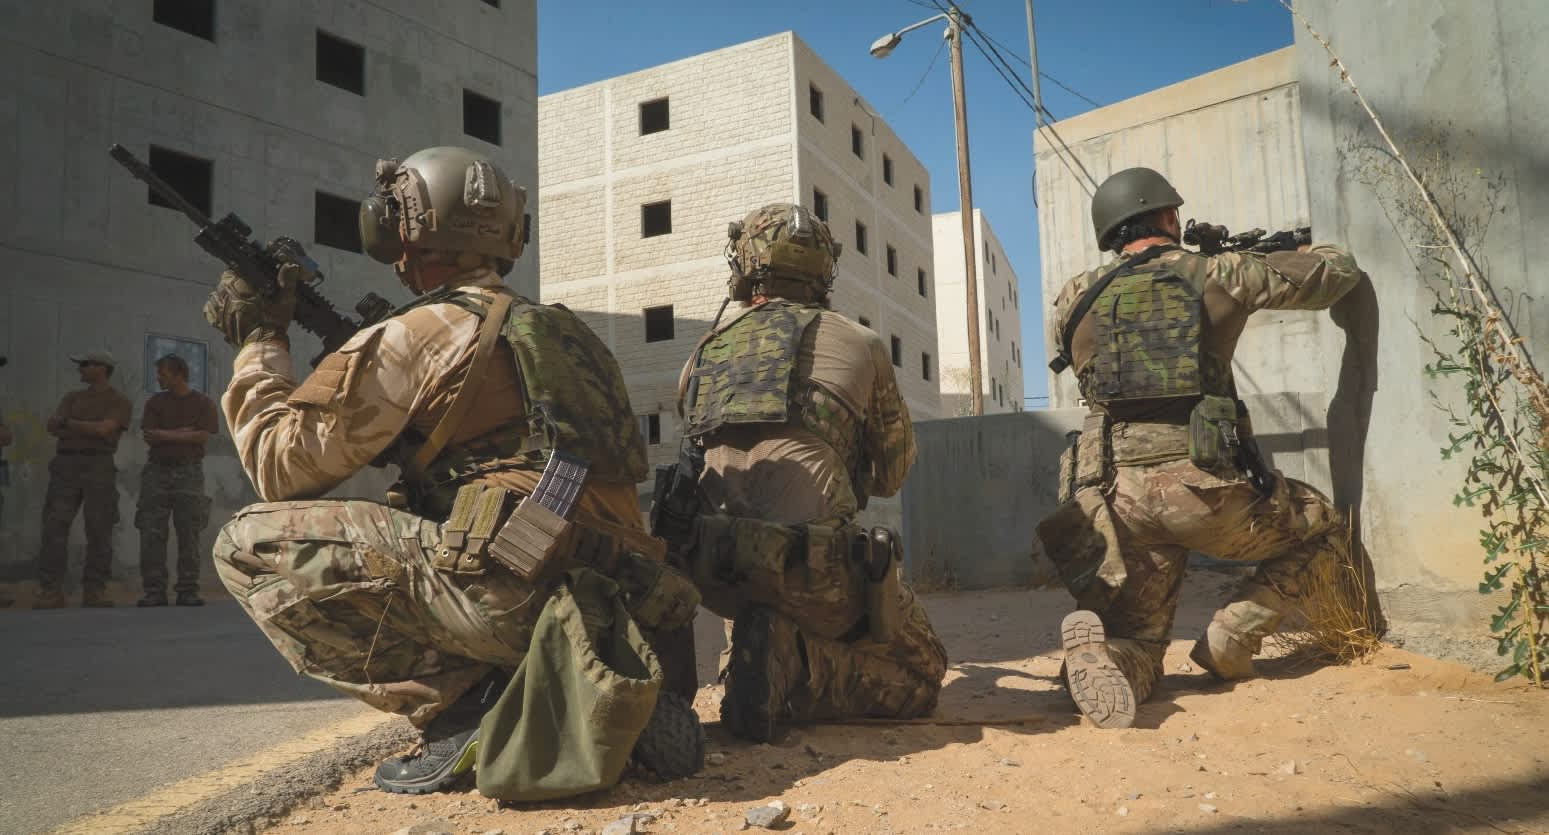 THE IDF'S ELITE Duvdevan unit and the Czech Armed Force's 601st Special Forces Group train together recently in urban-warfare techniques at Tze'elim Army Base in the Negev. (IDF)